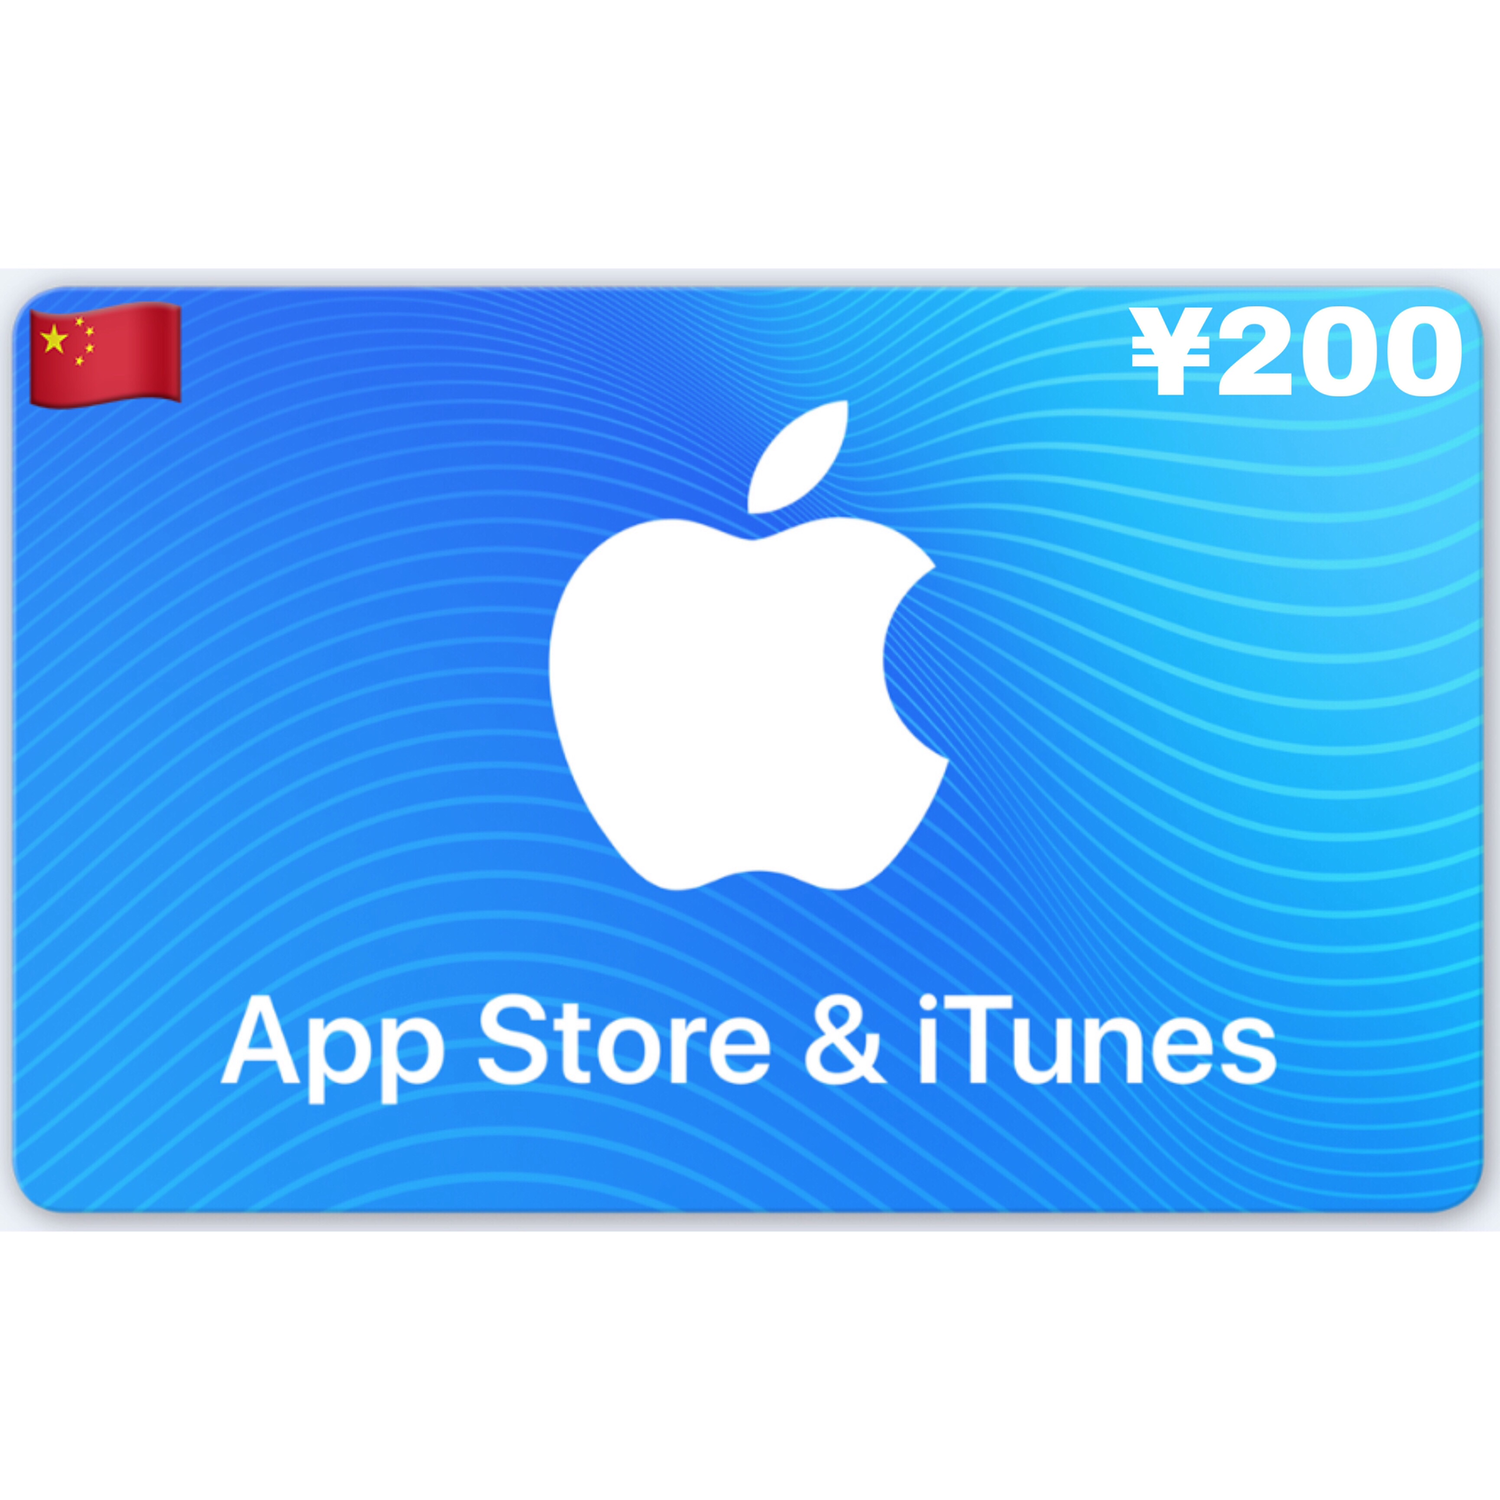 Apple App Store & iTunes Gift Card China ¥200